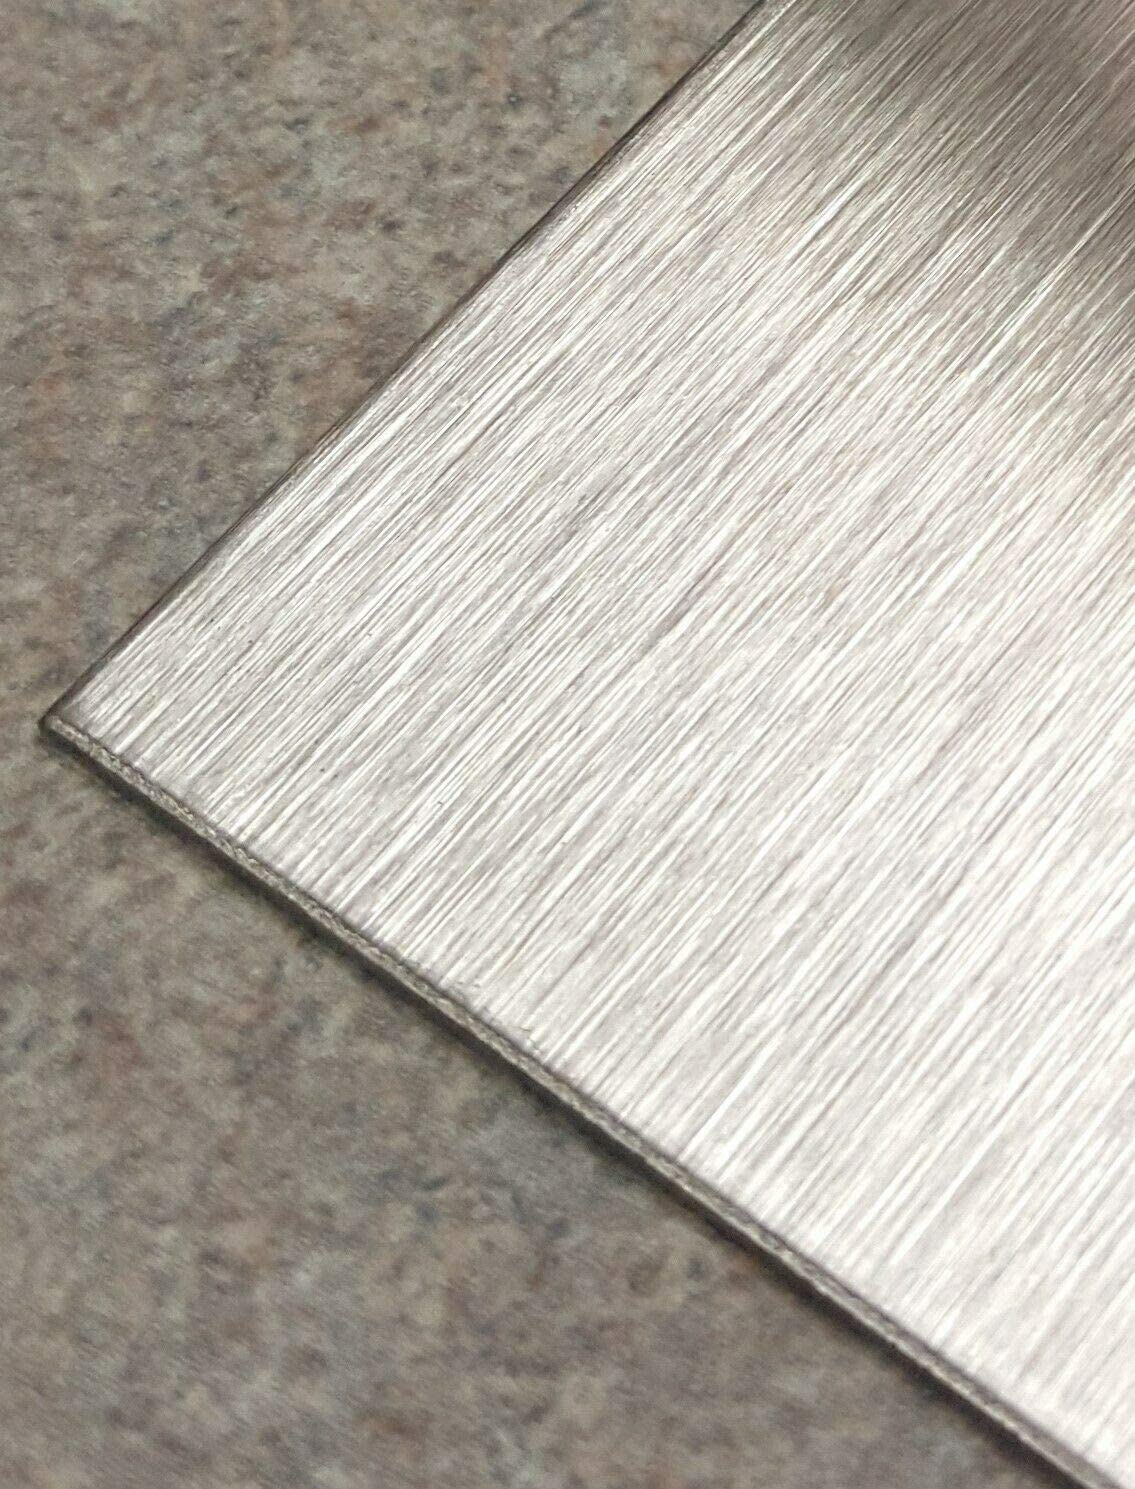 """11 Gauge Stainless Steel #4 Brushed 304 Sheet Plate 6/"""" x 6/"""""""